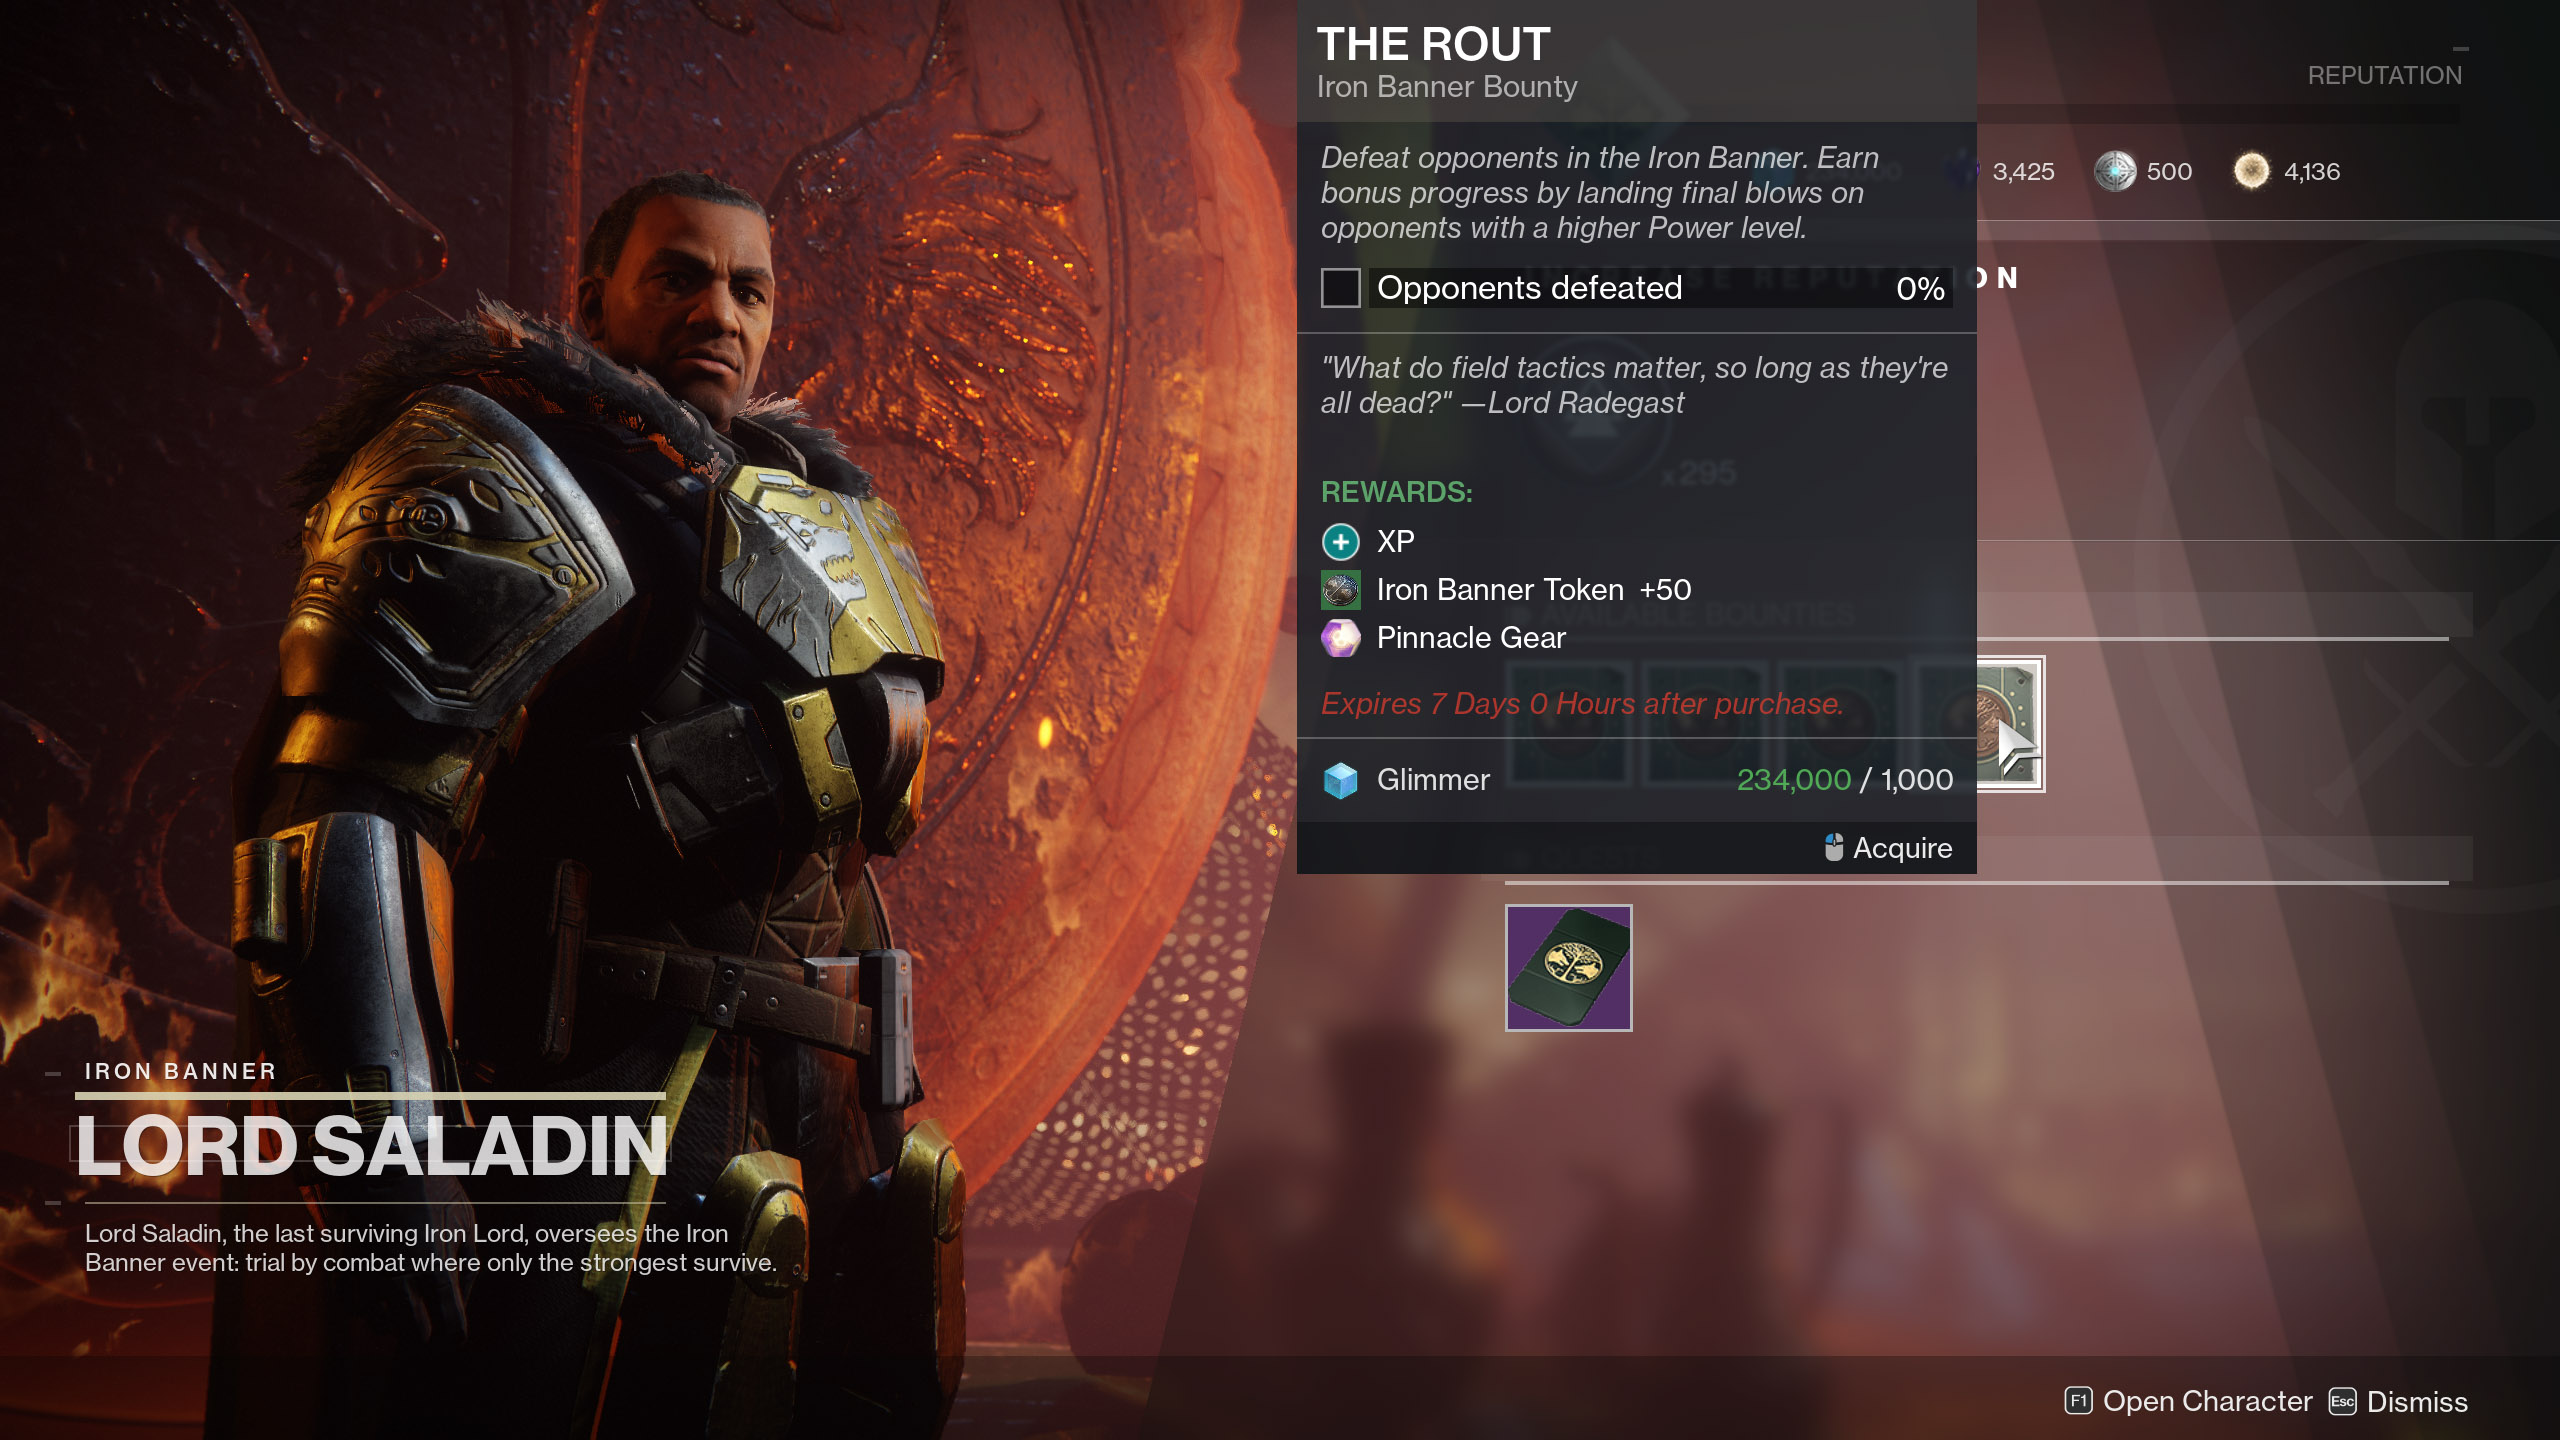 The Rout Iron Banner Bounty